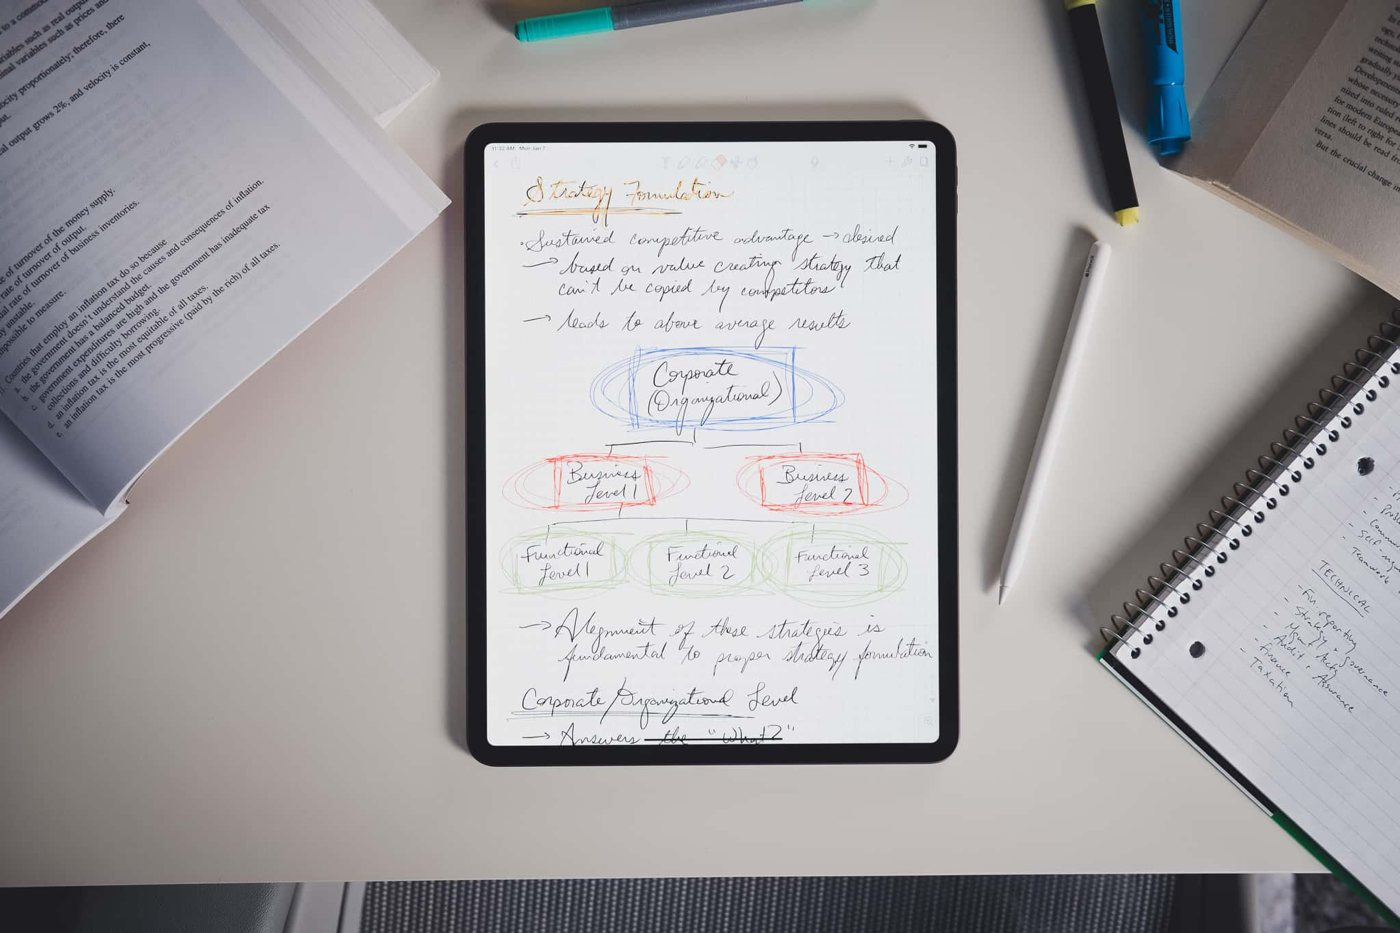 The Best App For Taking Handwritten Notes On An Ipad The